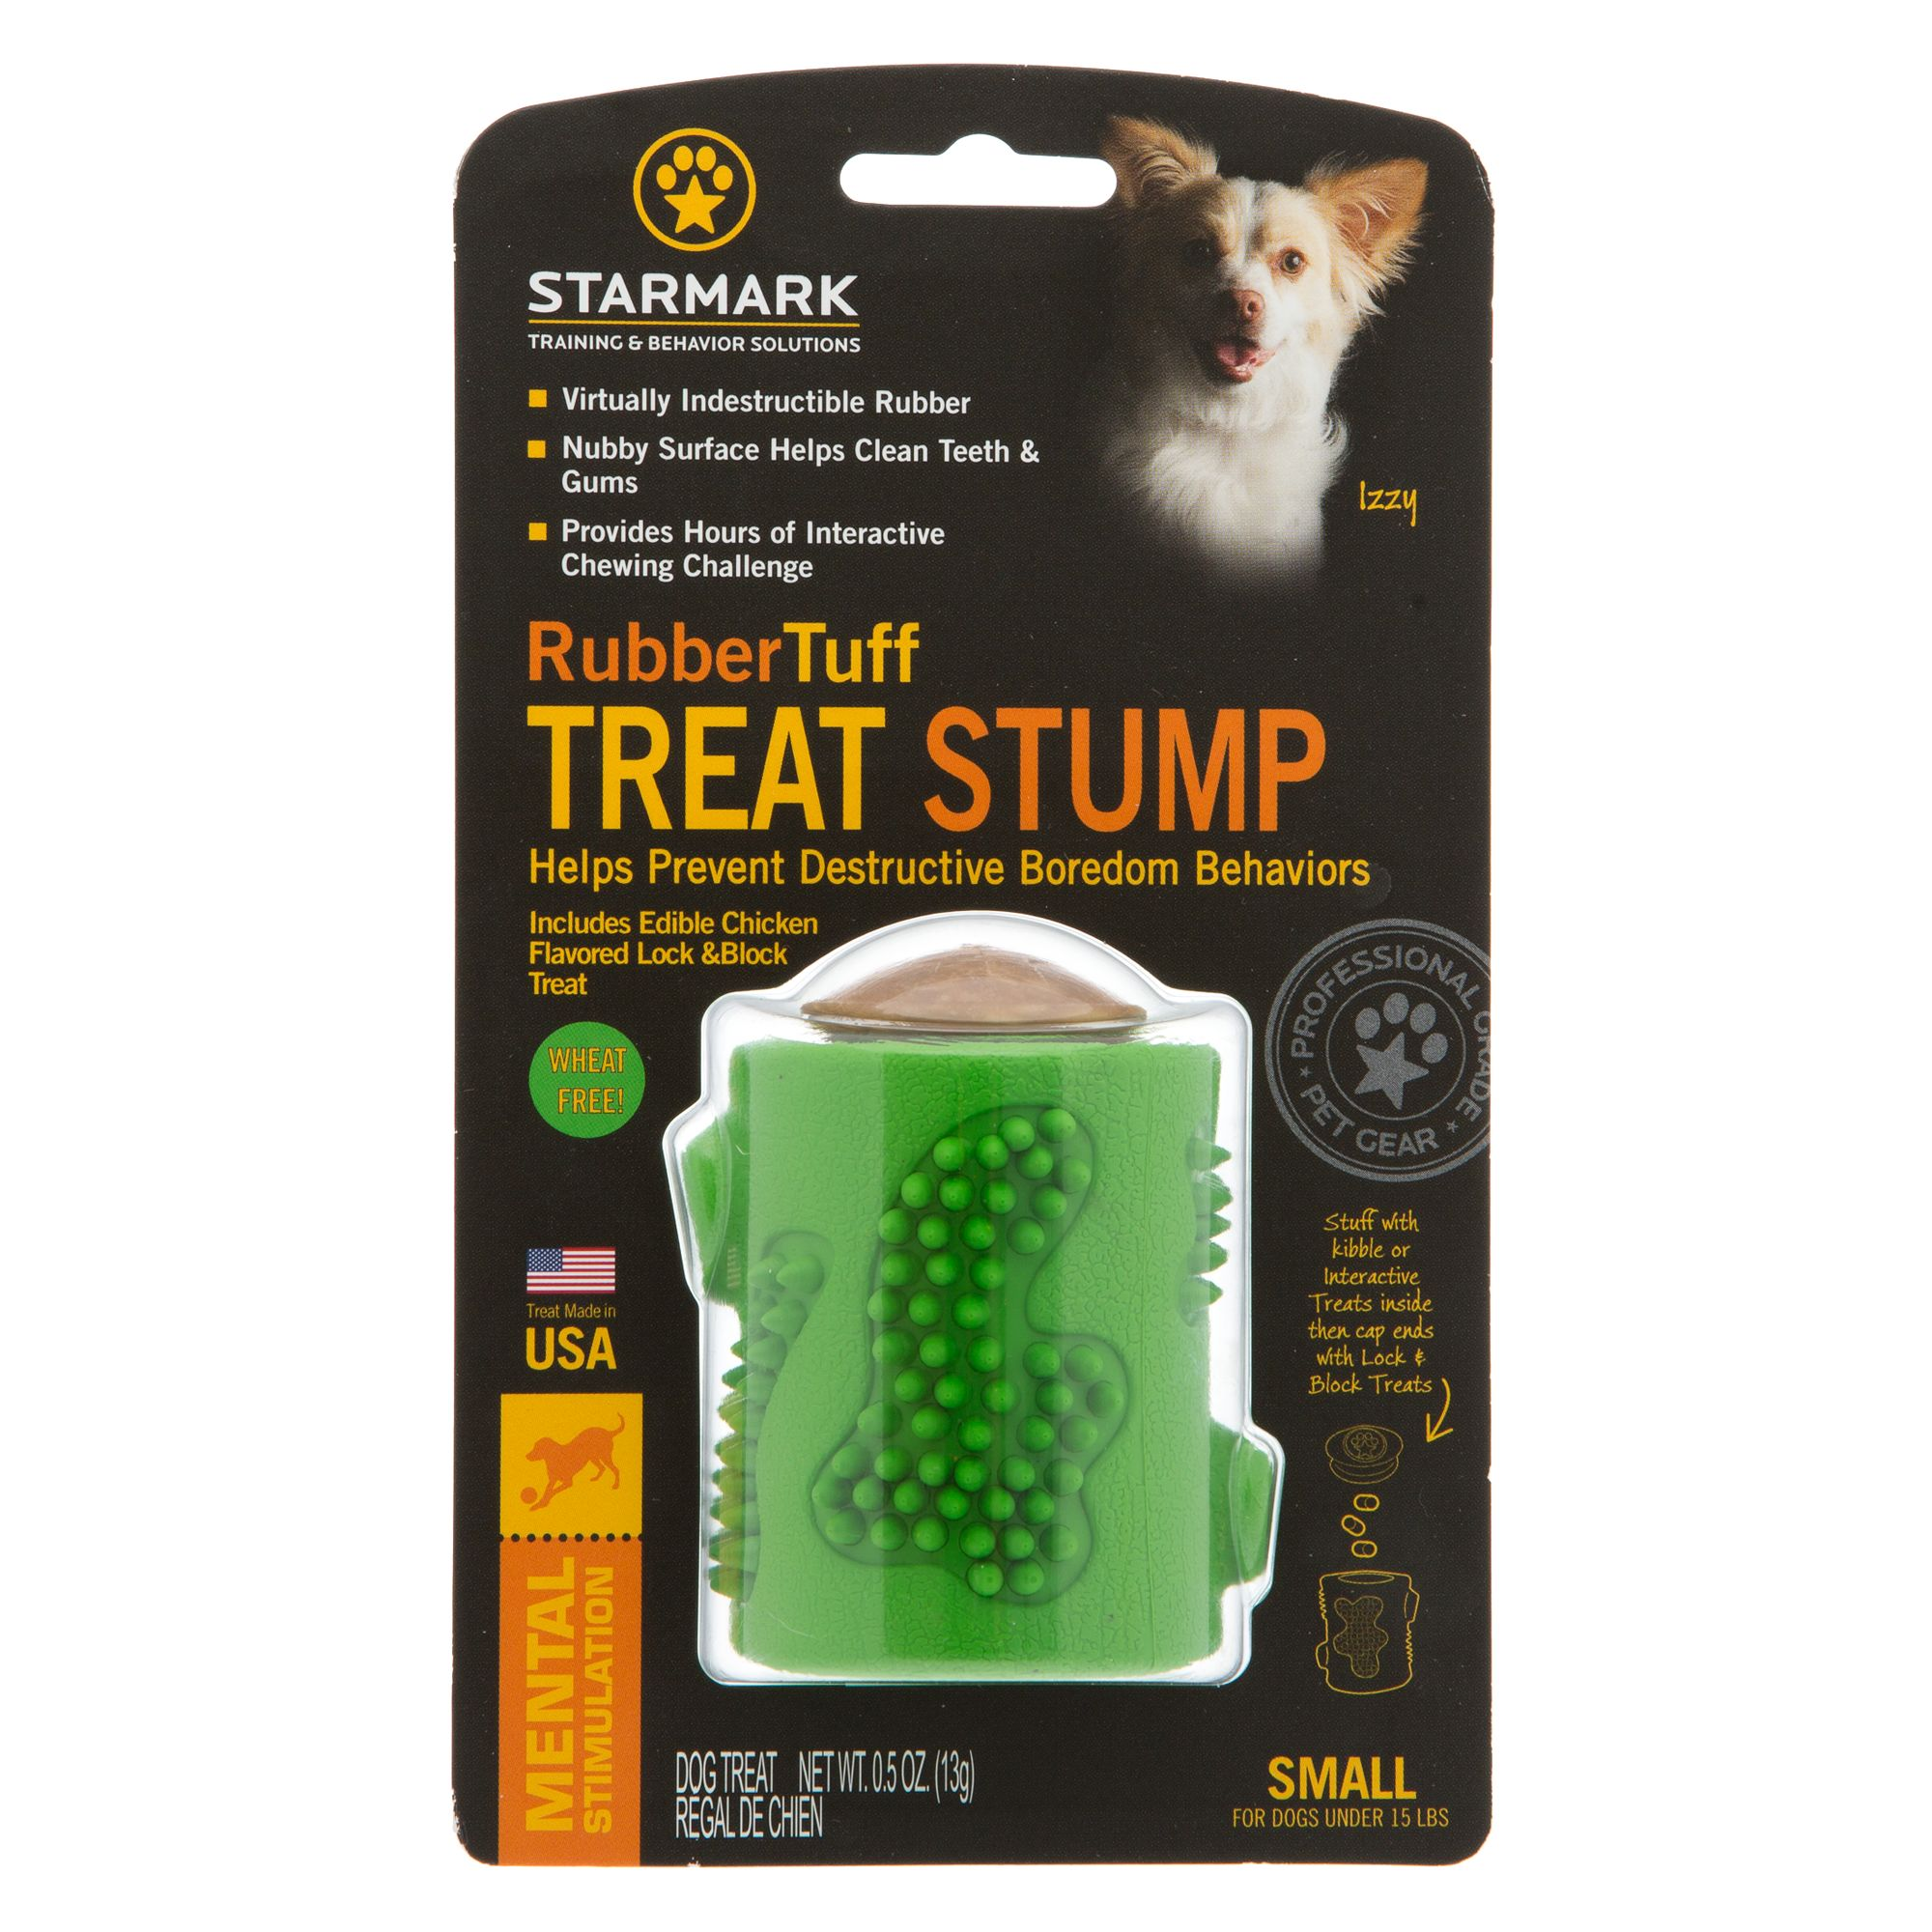 Starmark Rubber Tuff Stump Treat Dog Toy size: Small 5249085